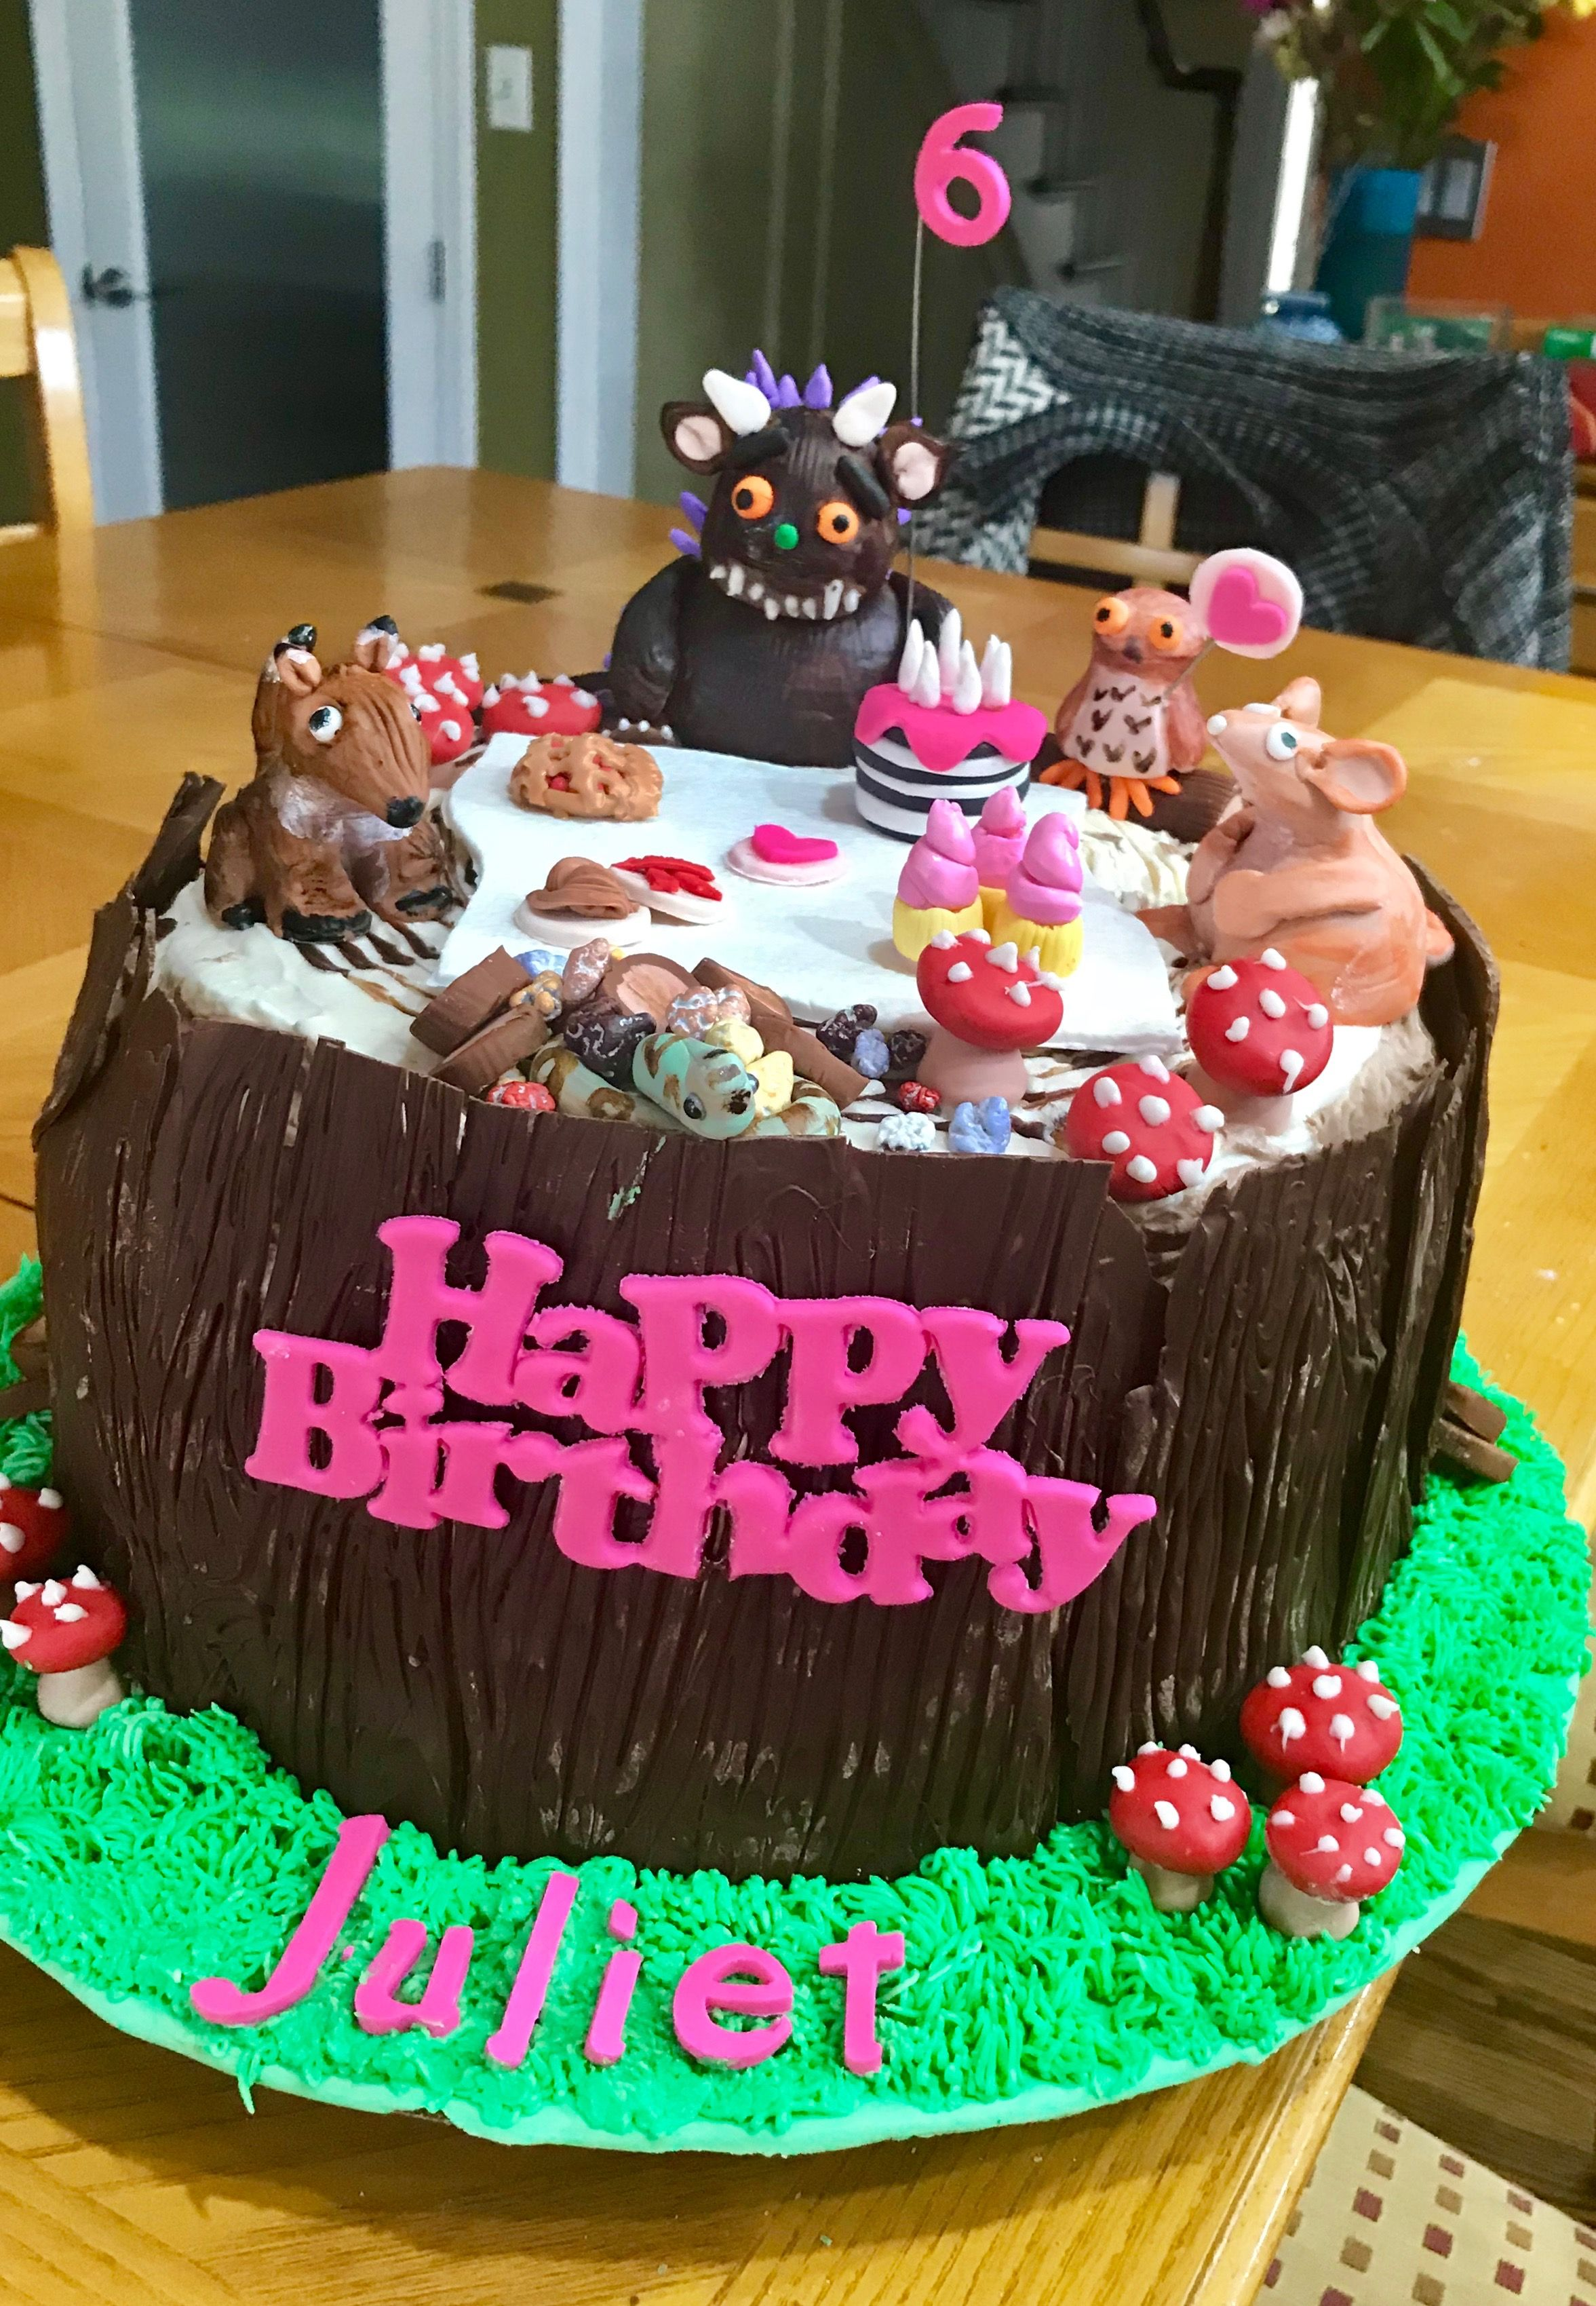 Pin by Teresa Fasone on Kids cakes (With images) | Cool ...